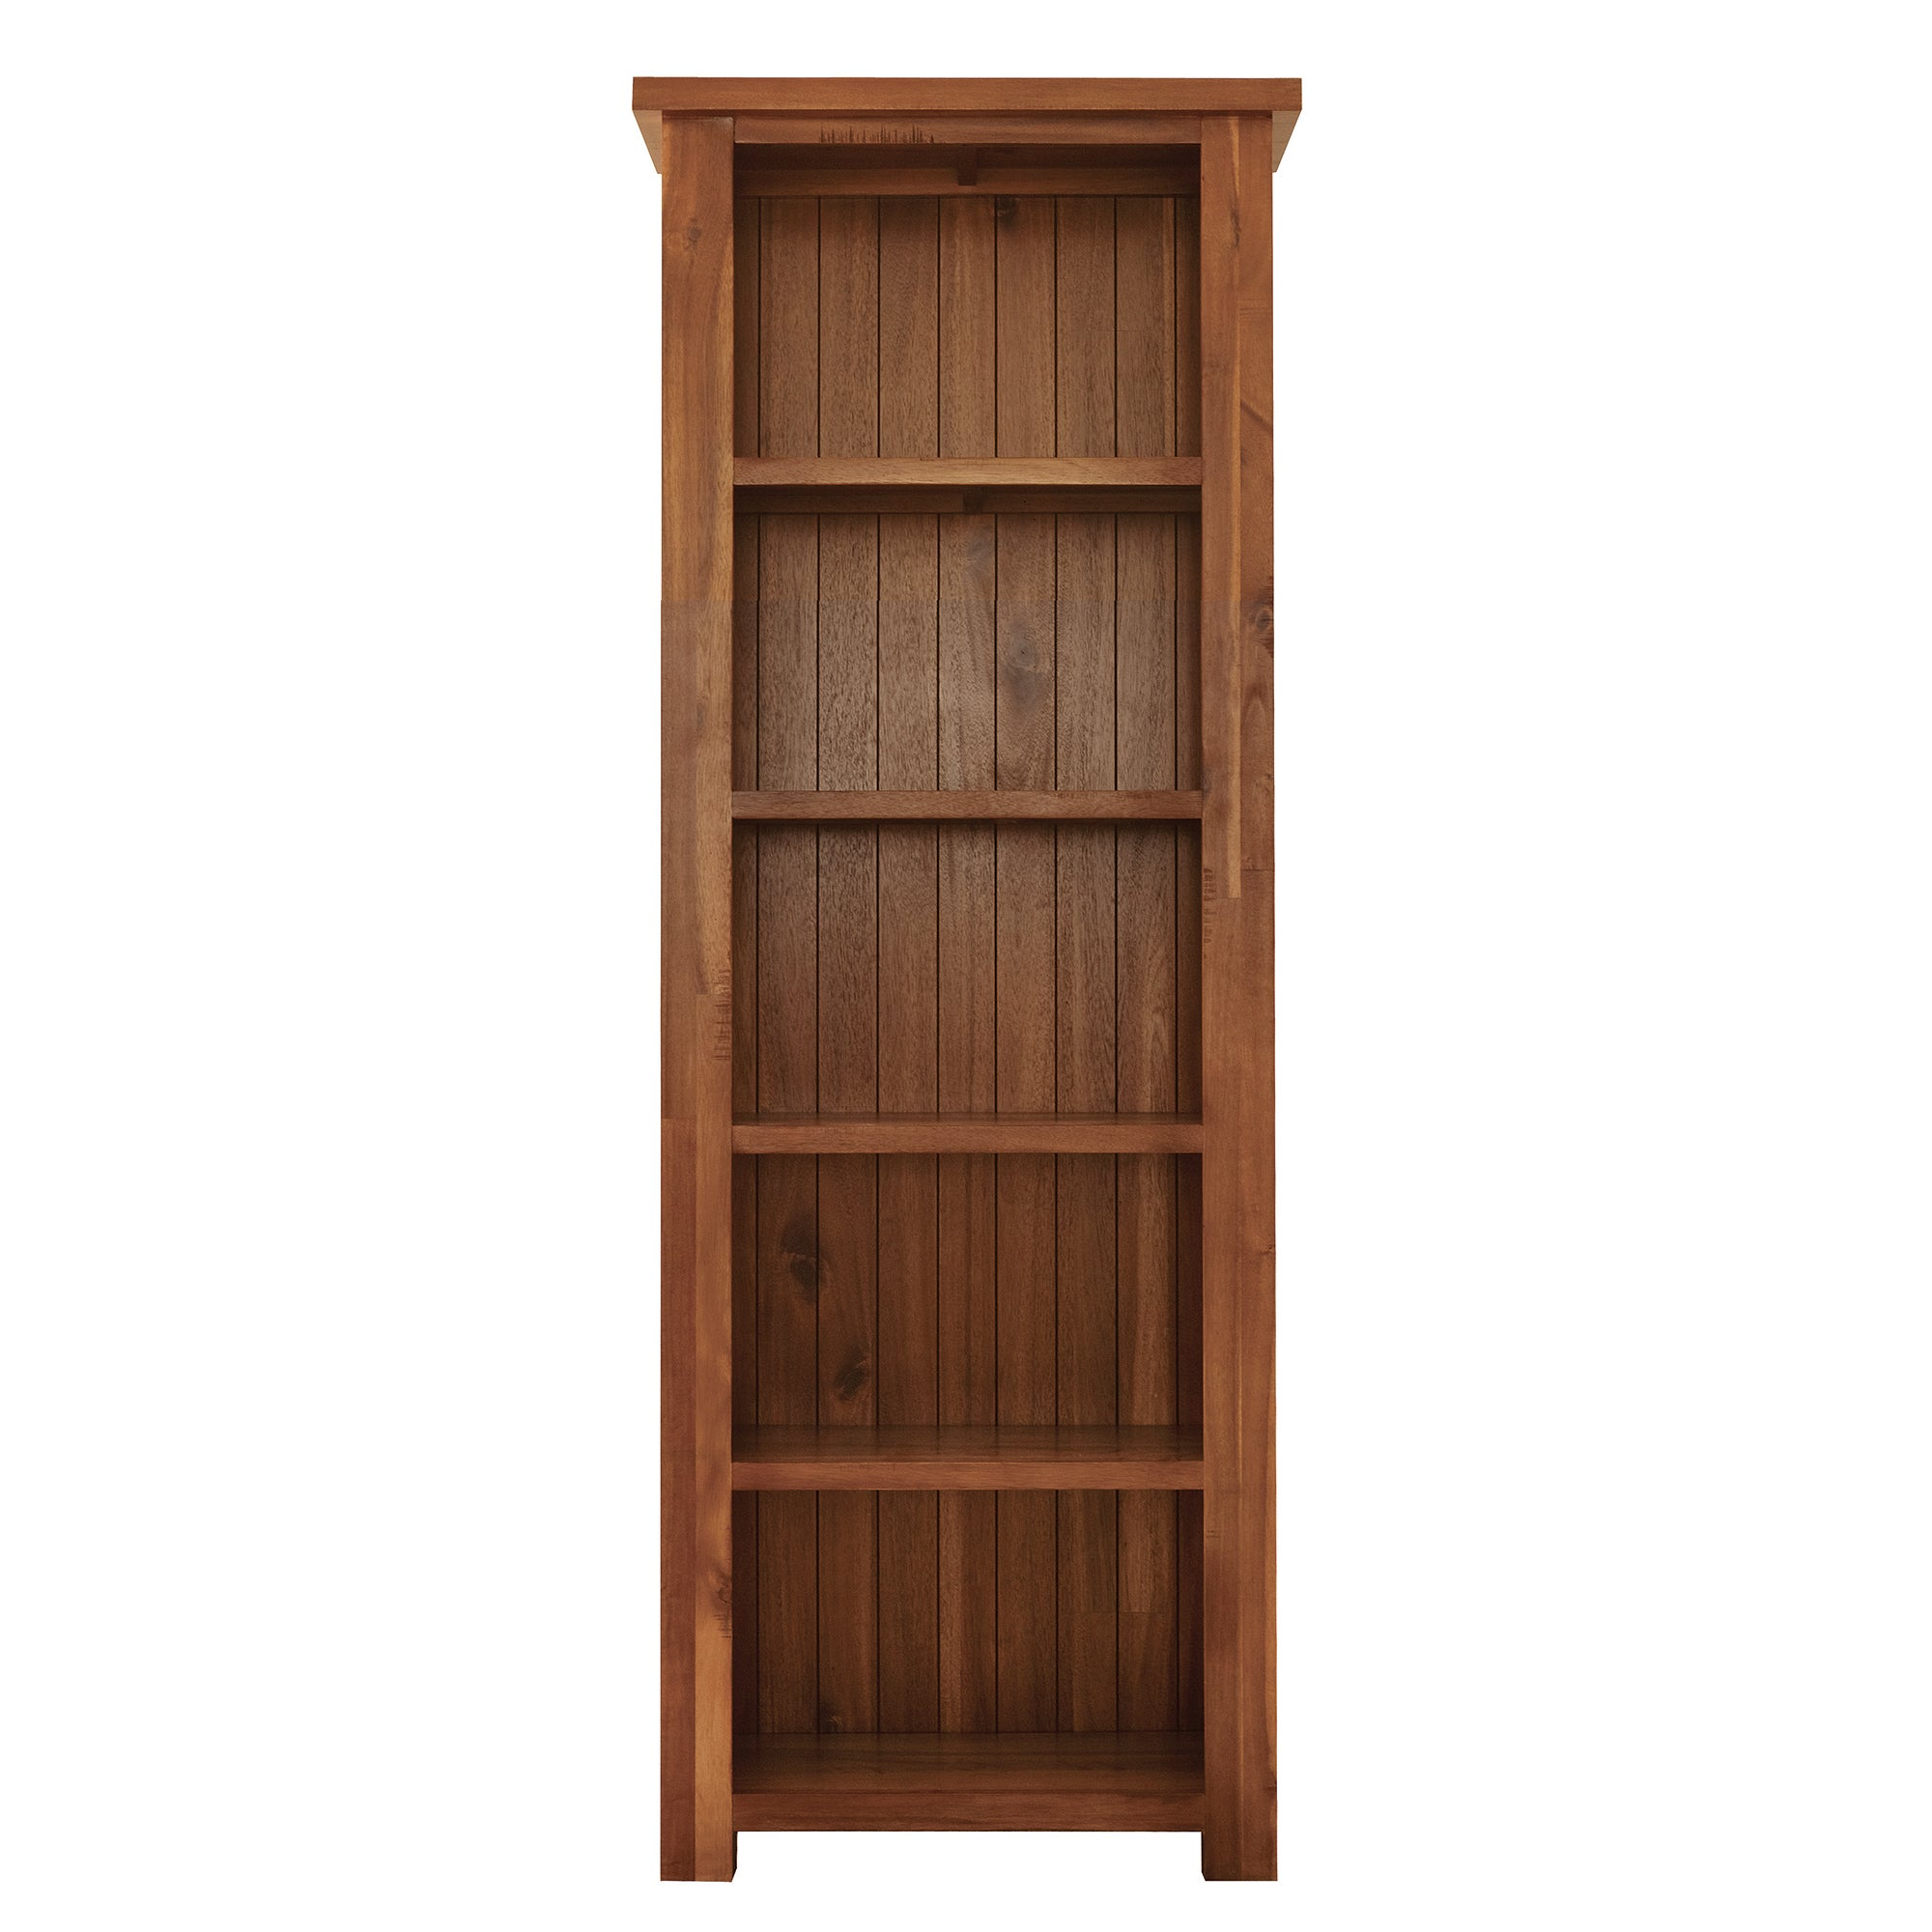 Buy cheap dark wood bookcase compare furniture prices